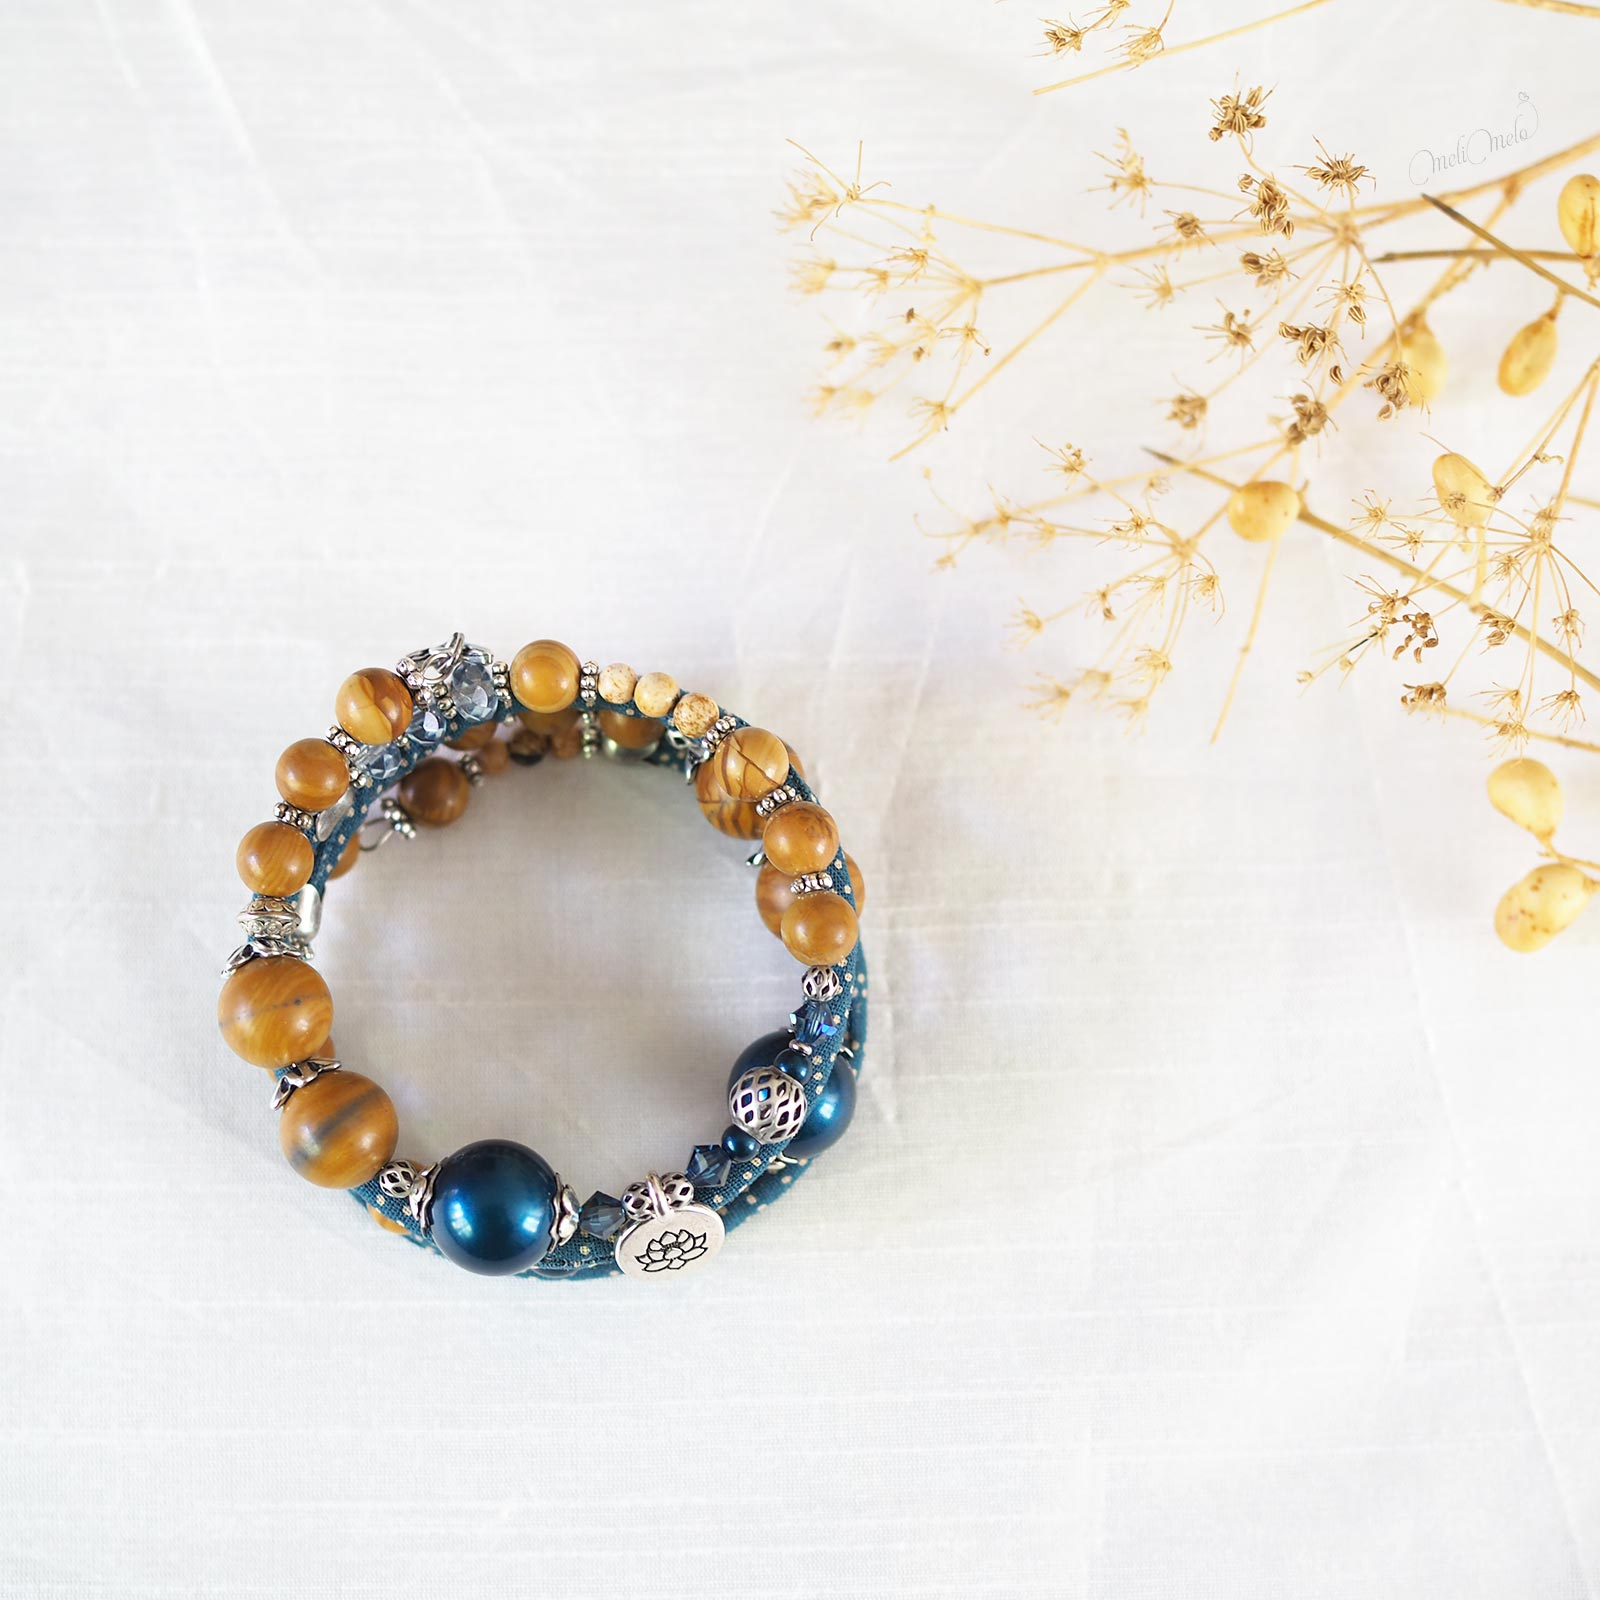 Bracelet Seikaiha Blue gemmes Jaspe perles nacrées fleur lotus Collection Japon laboutiquedemelimelo